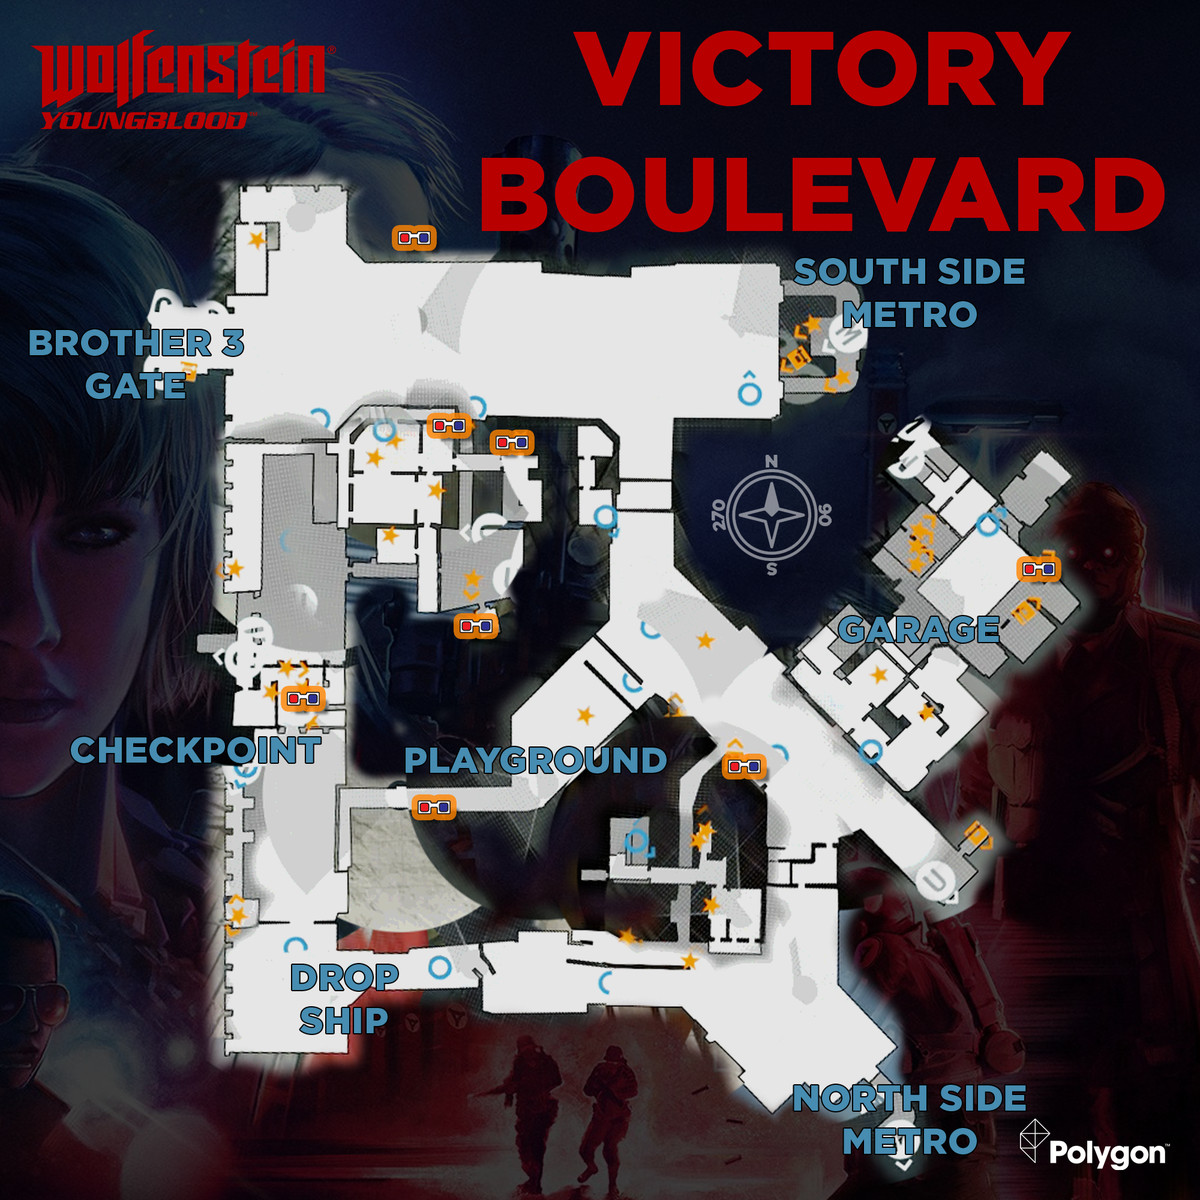 Wolfenstein: Youngblood Victory Boulevard map with 3D Glasses icons